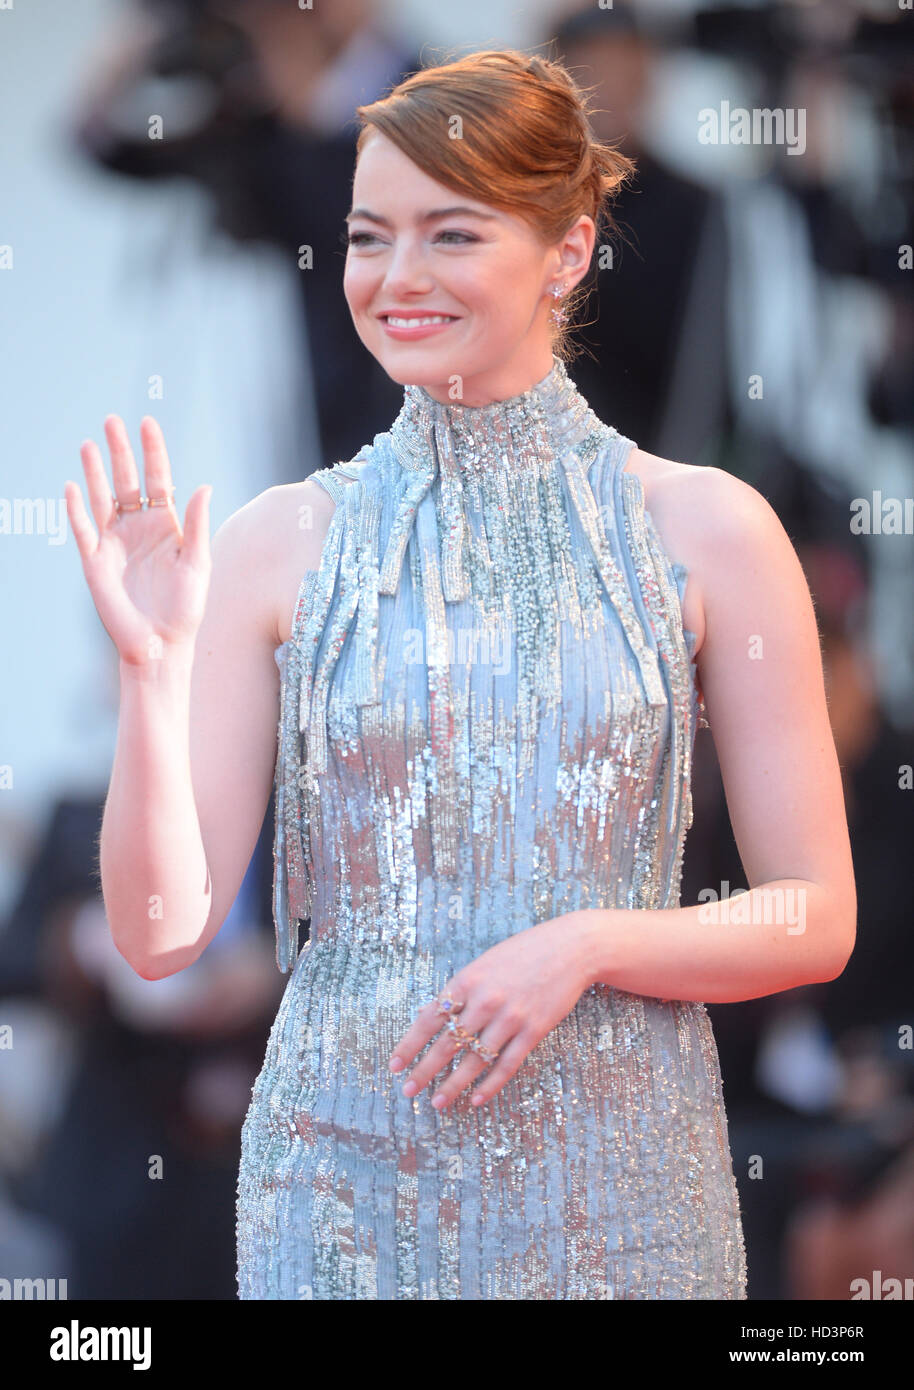 73rd Venice Film Festival - La La Land - Premiere  Featuring: Emma Stone Where: Venice, Italy When: 31 Aug 2016 - Stock Image